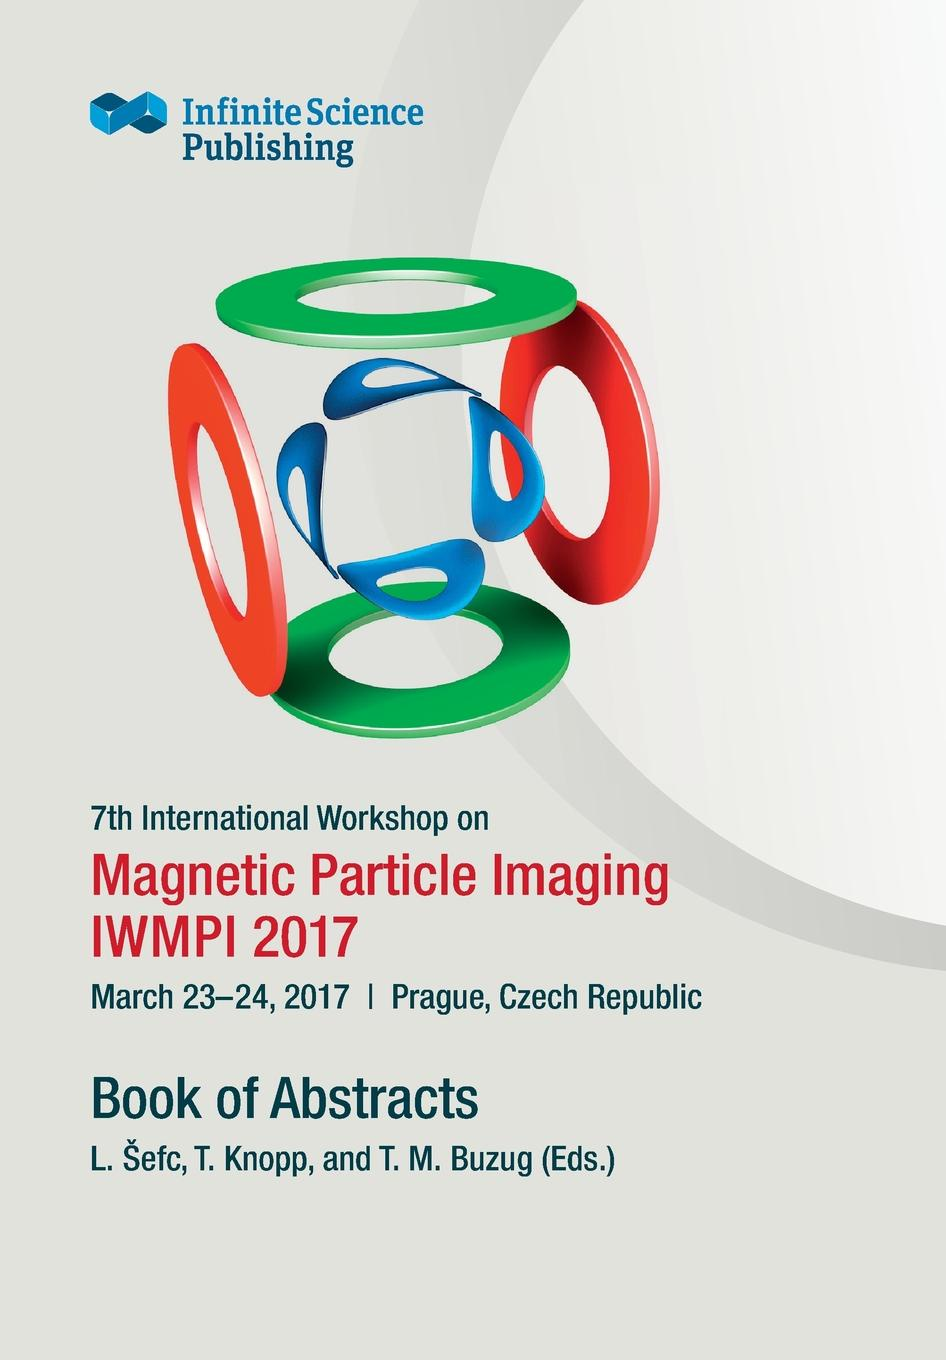 7th International Workshop on Magnetic Particle Imaging (IWMPI 2017) arnulf oppelt imaging systems for medical diagnostics fundamentals technical solutions and applications for systems applying ionizing radiation nuclear magnetic resonance and ultrasound